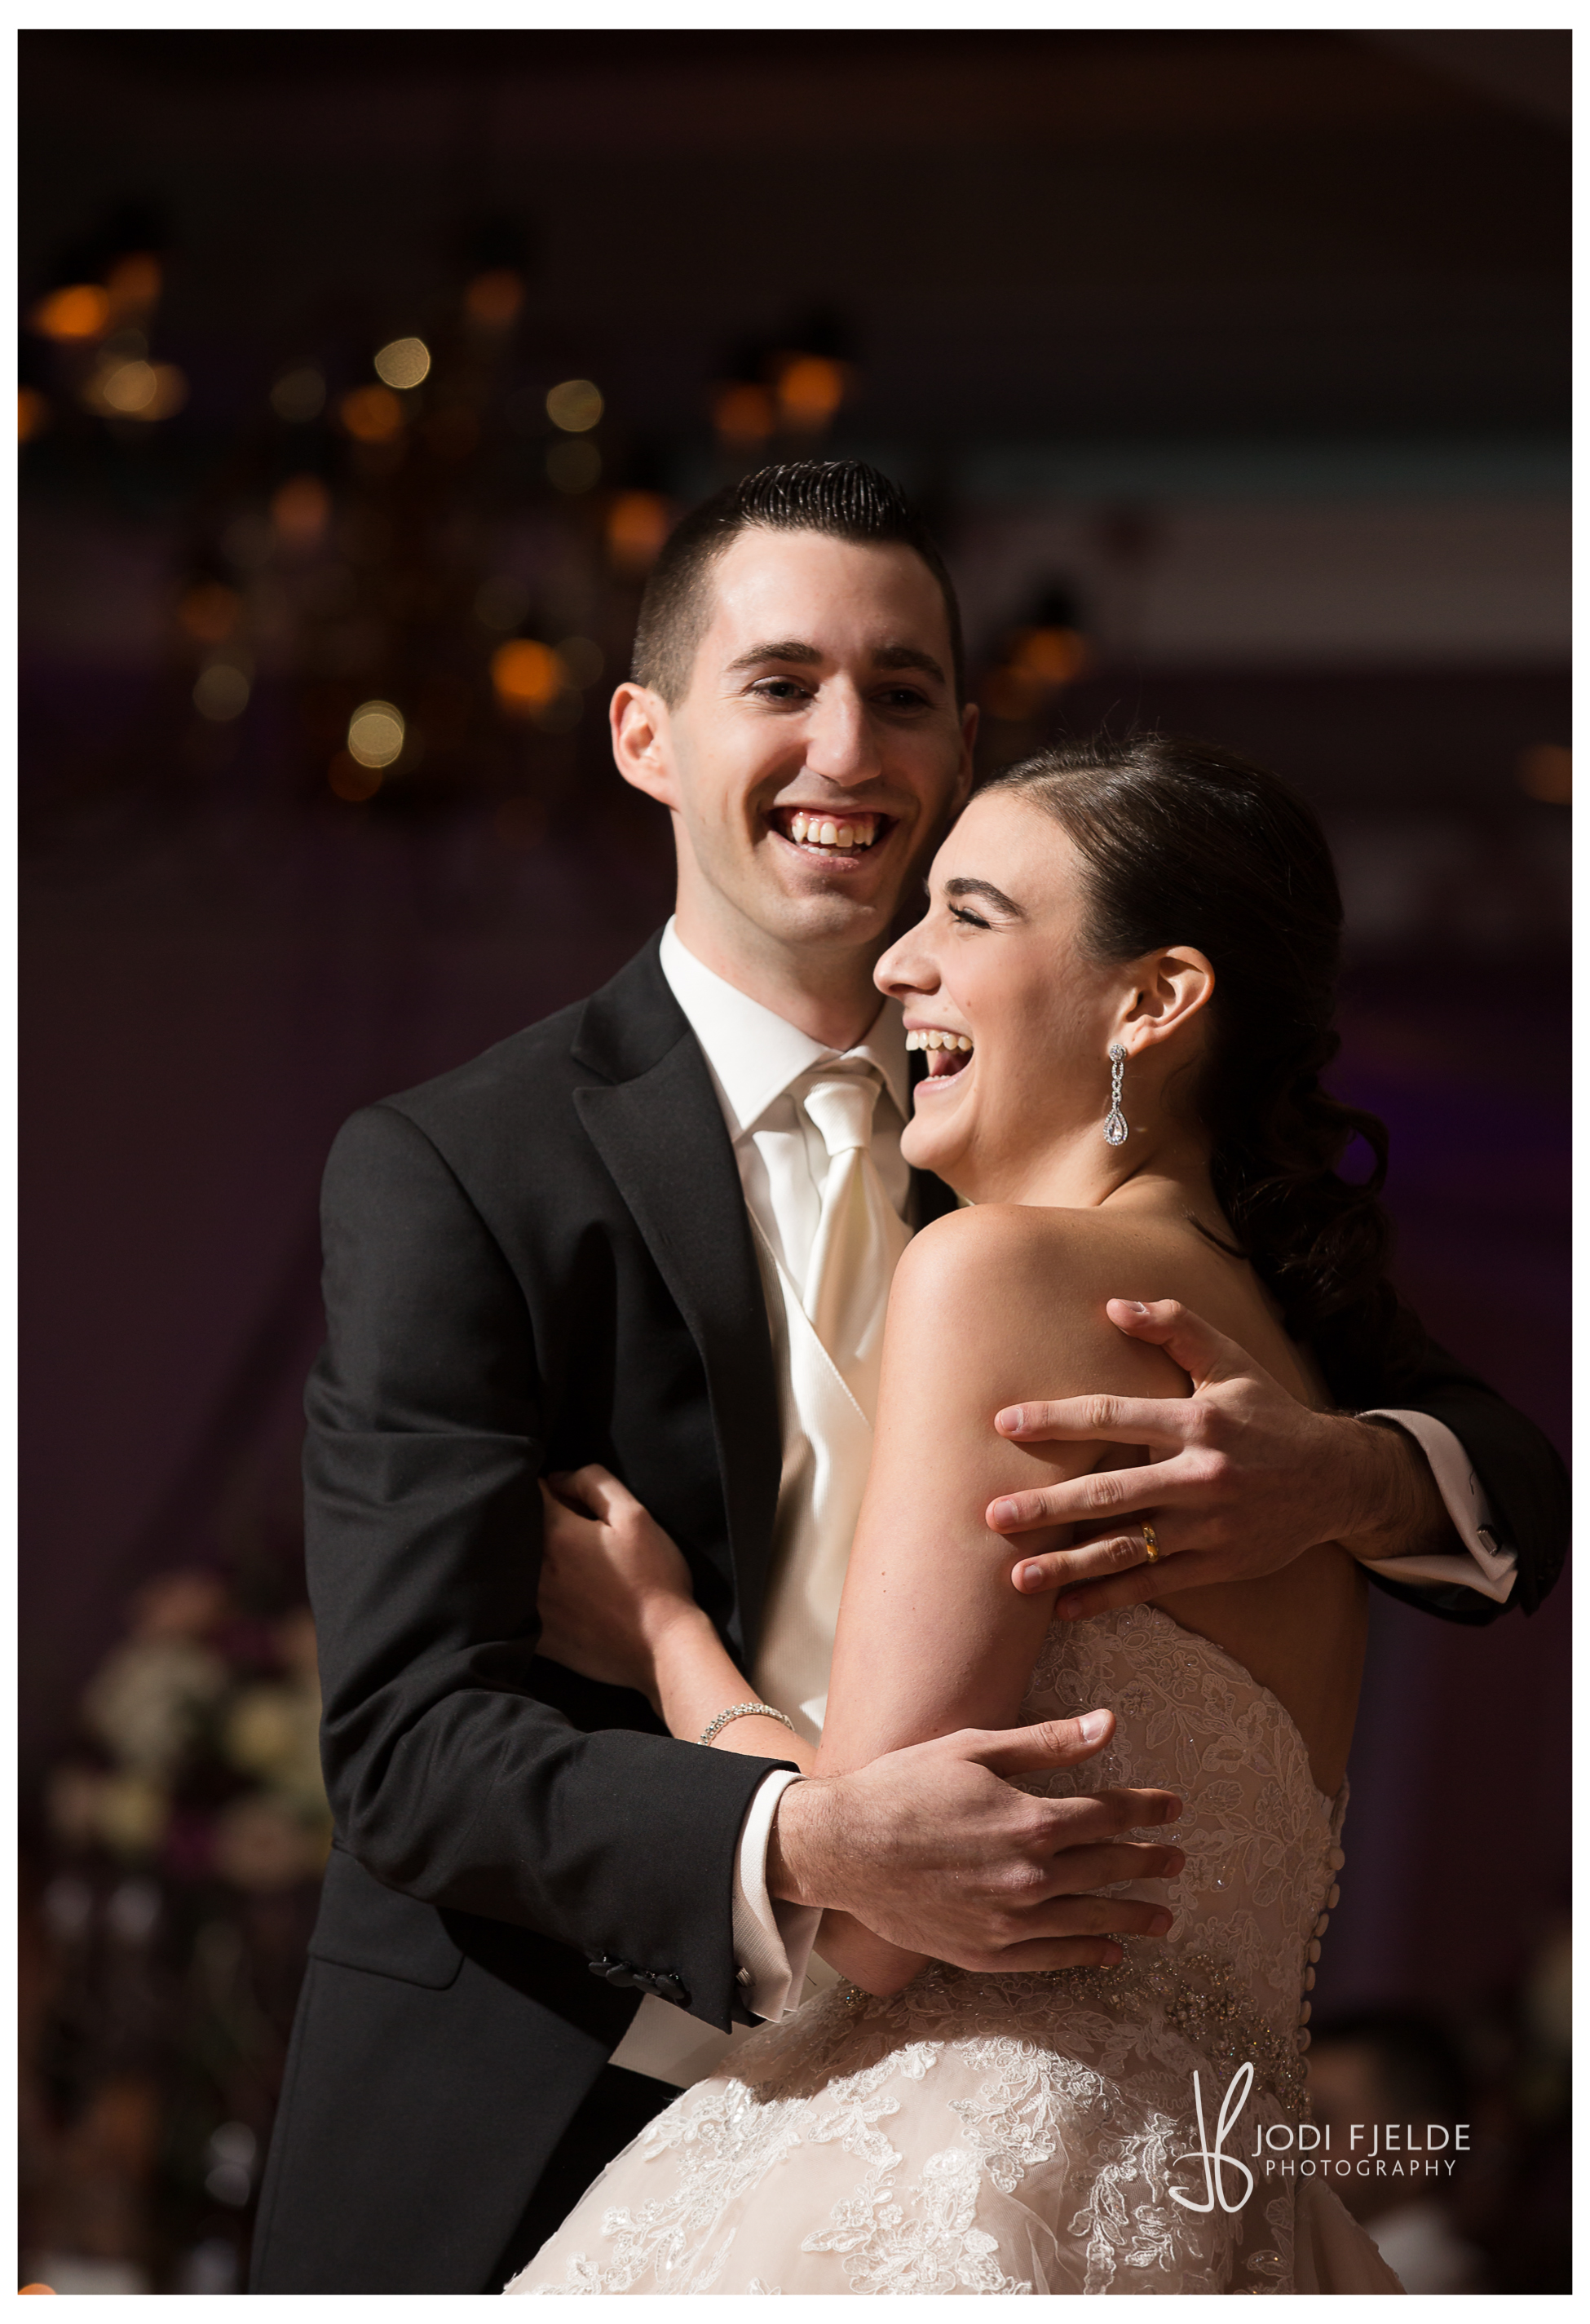 Benvenuto_Palm_Beach_Wedding_Jewish_Michelle & Jason_Jodi_Fjedle_Photography 48.jpg